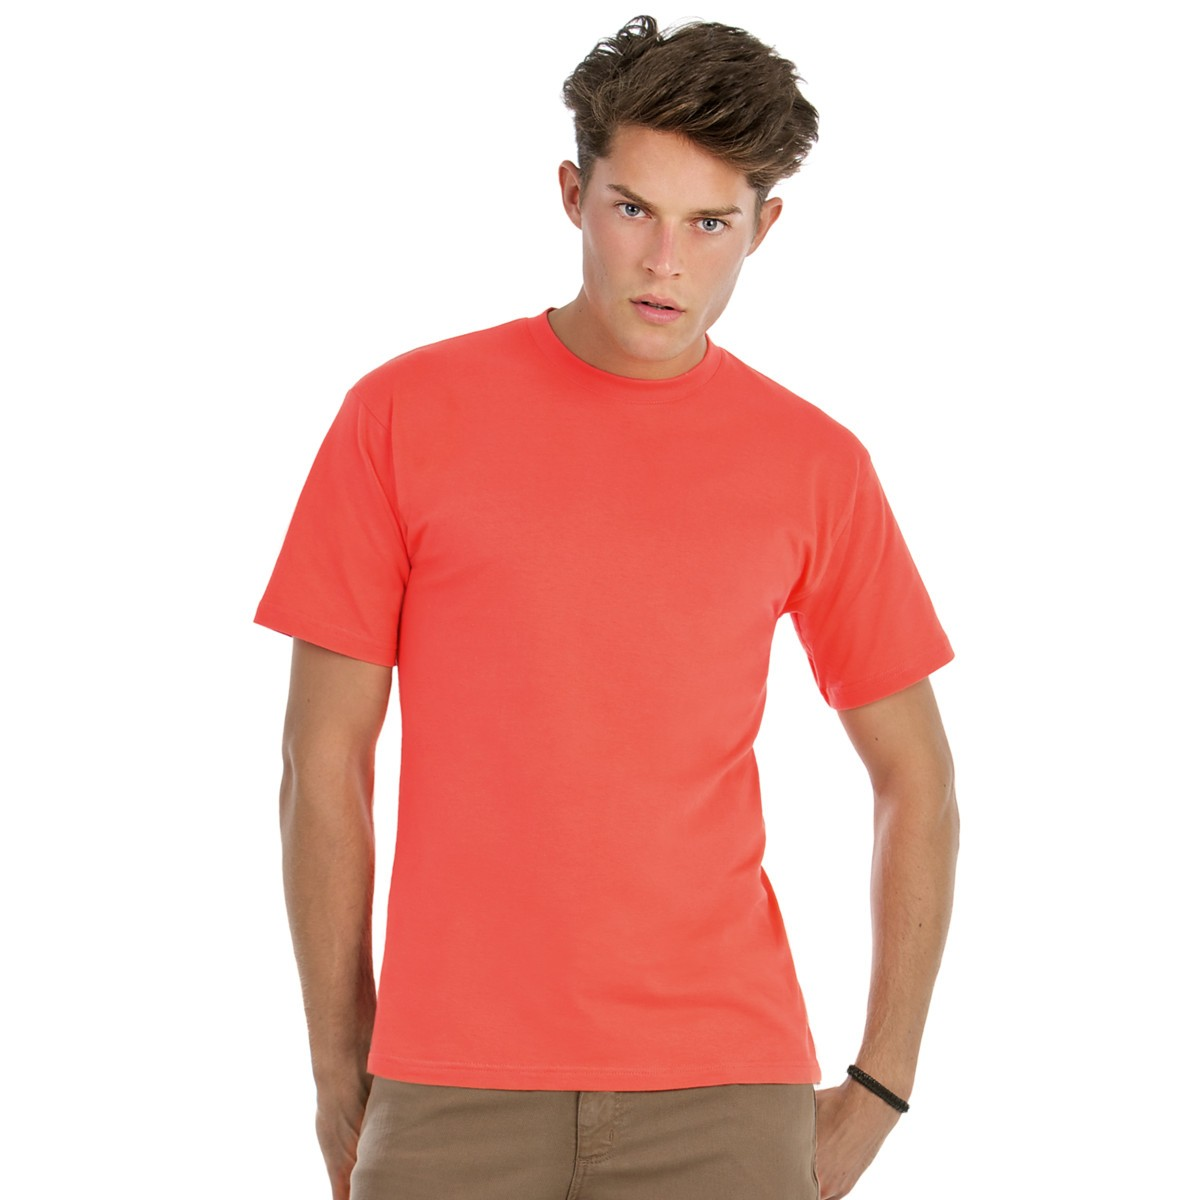 B c exact men 39 s 150 t shirt for Coral shirts for guys